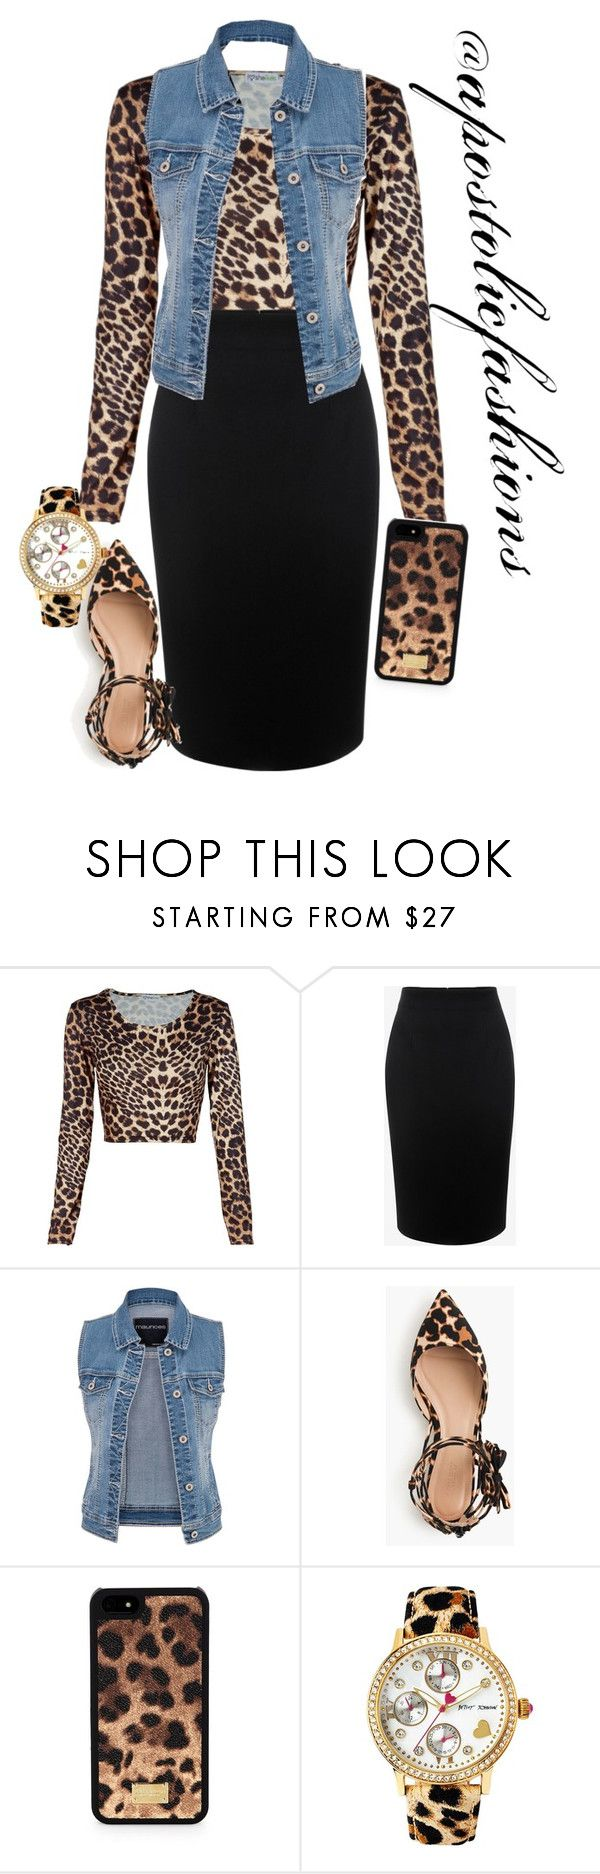 """Apostolic Fashions #1391"" by apostolicfashions on Polyvore featuring Alexander McQueen, maurices, J.Crew, Dolce&Gabbana and Betsey Johnson"